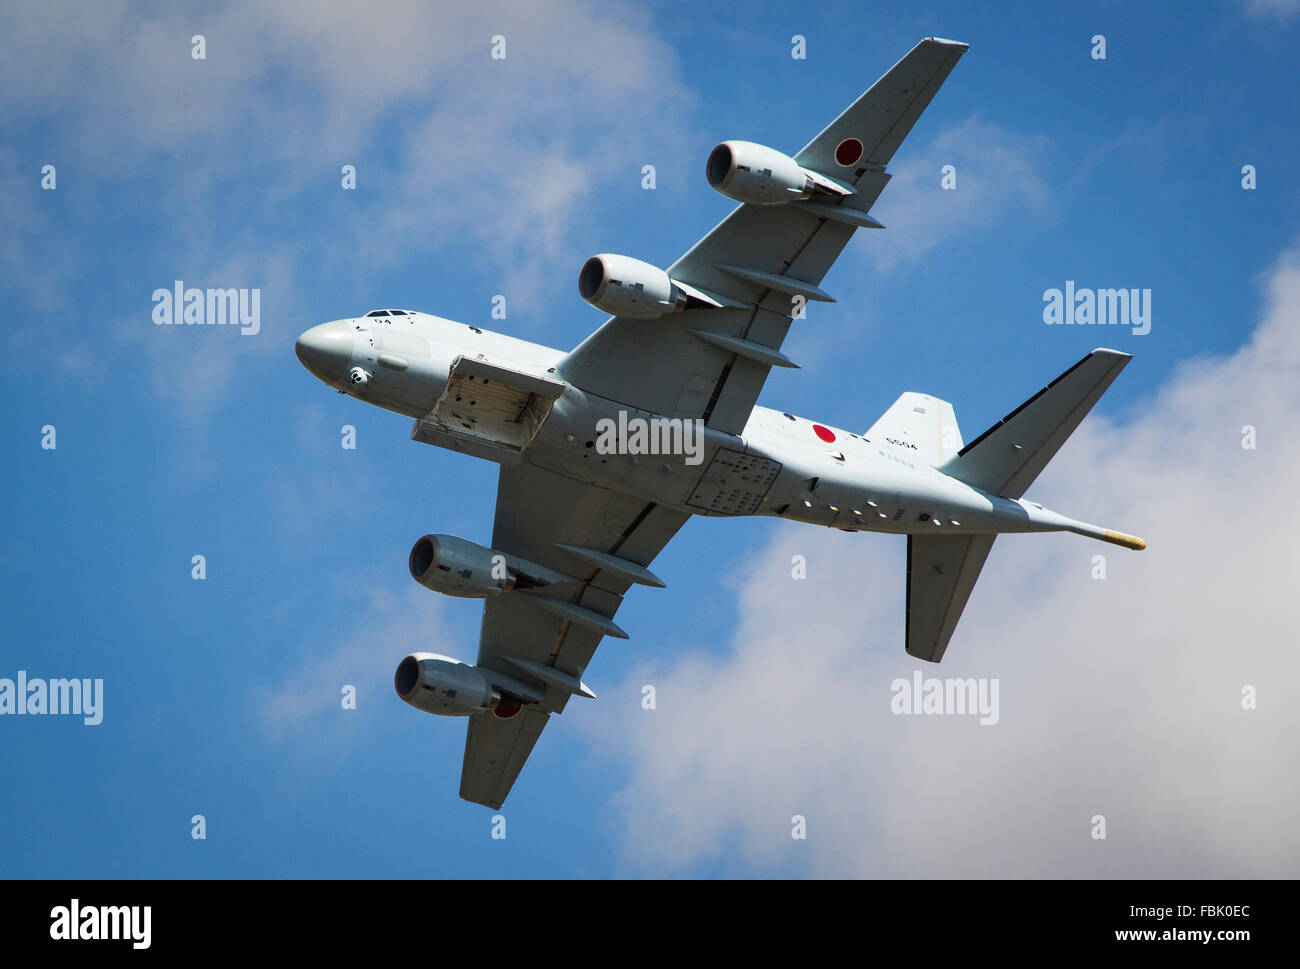 Japanese bomber jet aeroplane with bomb doors open at RIAT 2015 air show. International Air tattoo & Japanese bomber jet aeroplane with bomb doors open at RIAT 2015 air ...